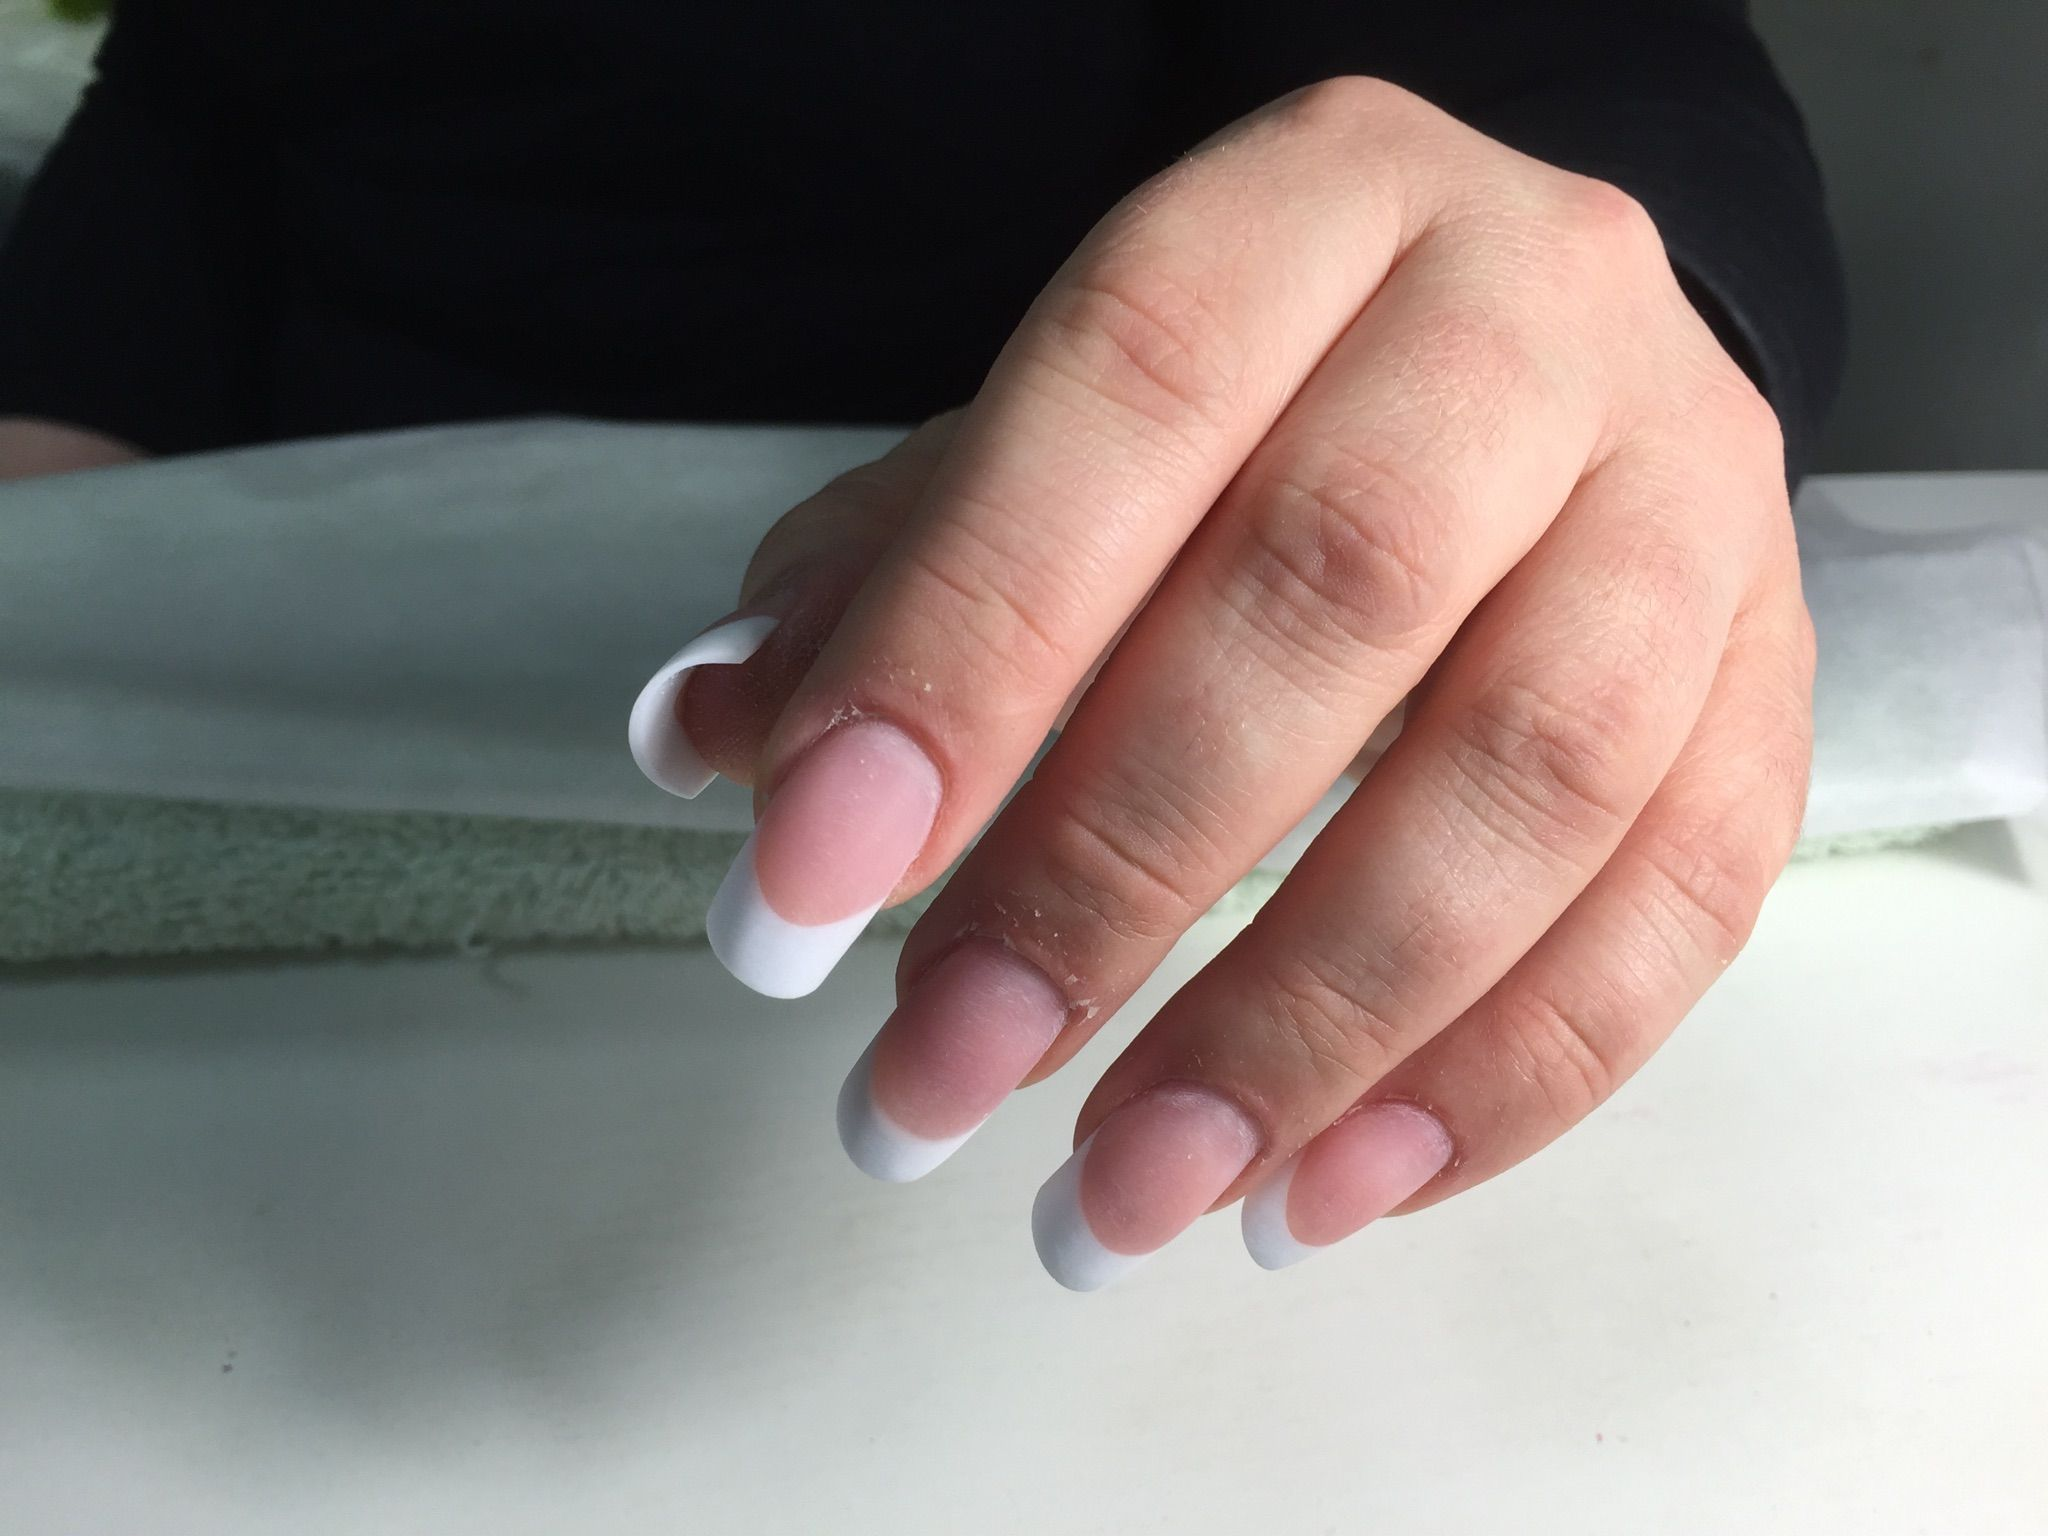 Sculpted Acrylic Nail Extensions With French Tips Squoval Shape Whitefrench Whitefrenchnails Brightonnai French Nails French Acrylic Nails Nail Extensions